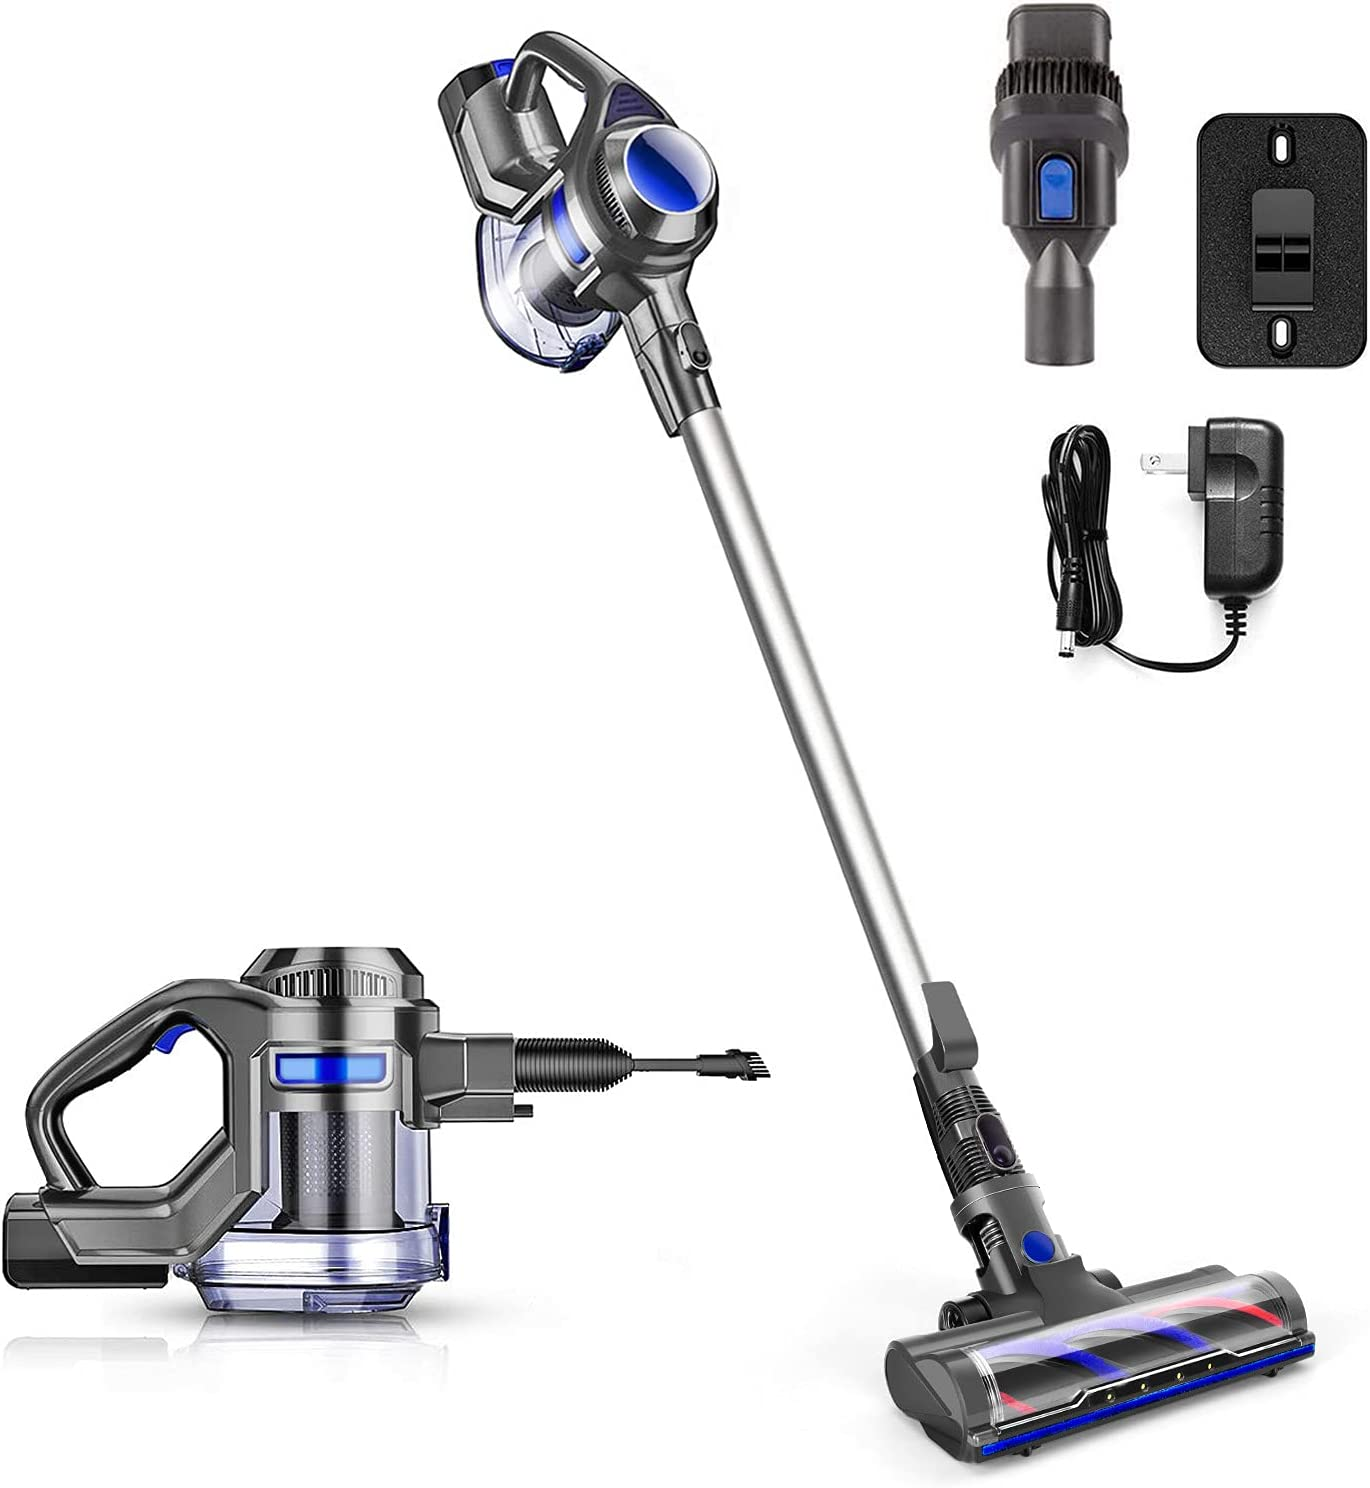 Cordless Limited time for free shipping Vacuum Powerful Suction Stick Handheld Department store Cleaner